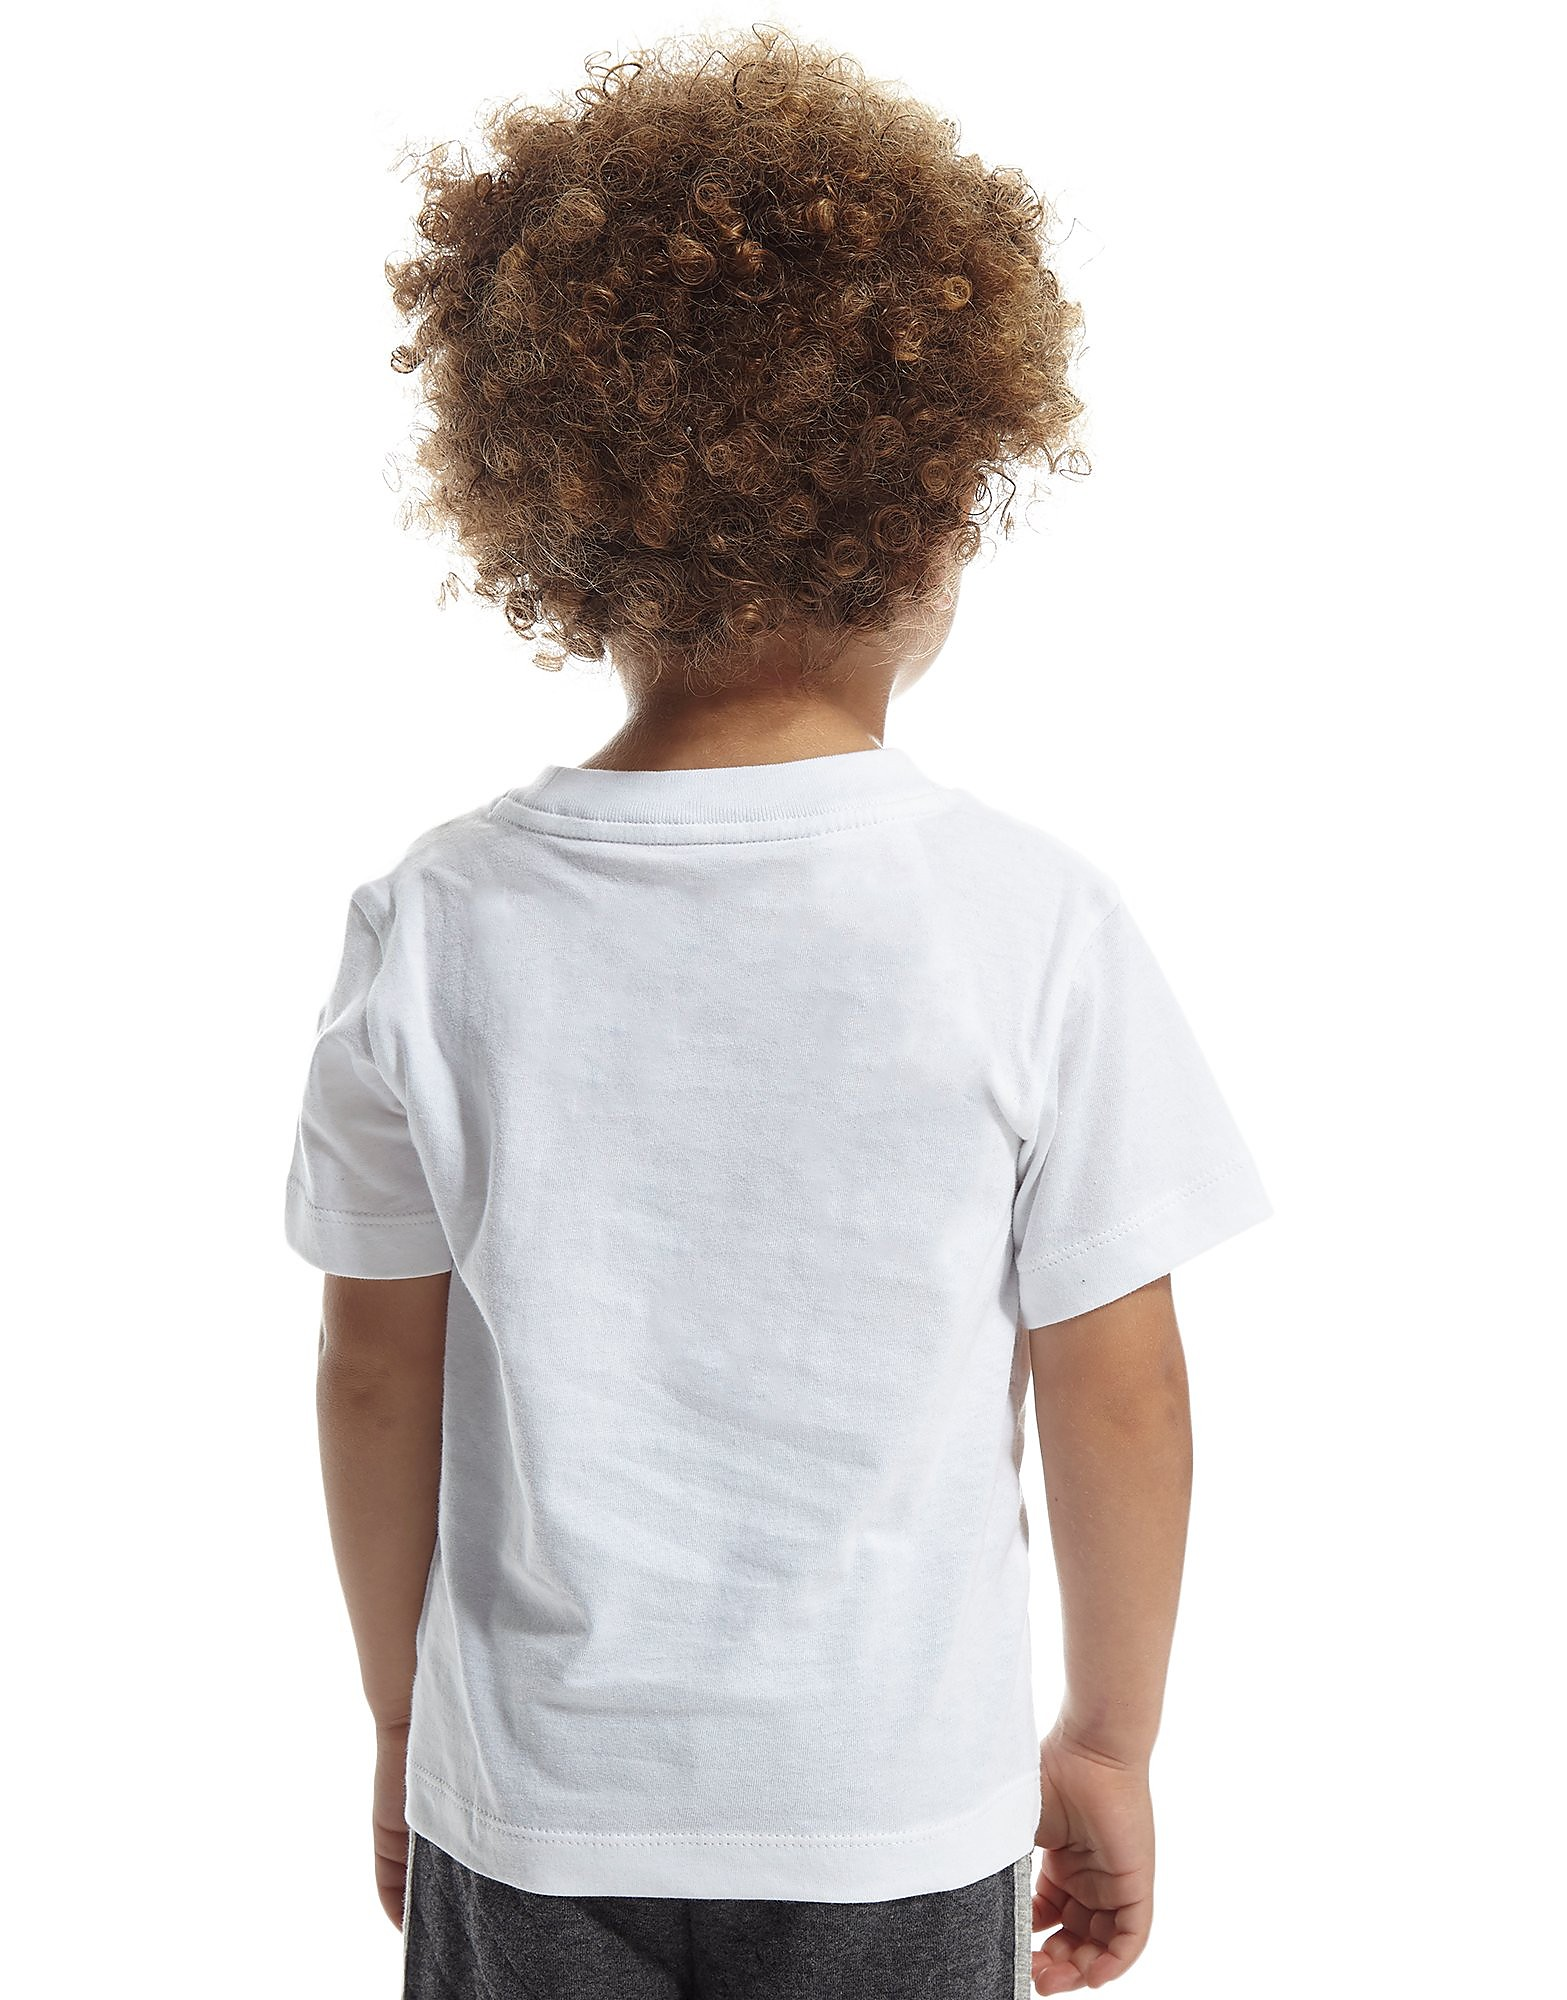 adidas Originals Qulted Trefoil T-Shirt Infant